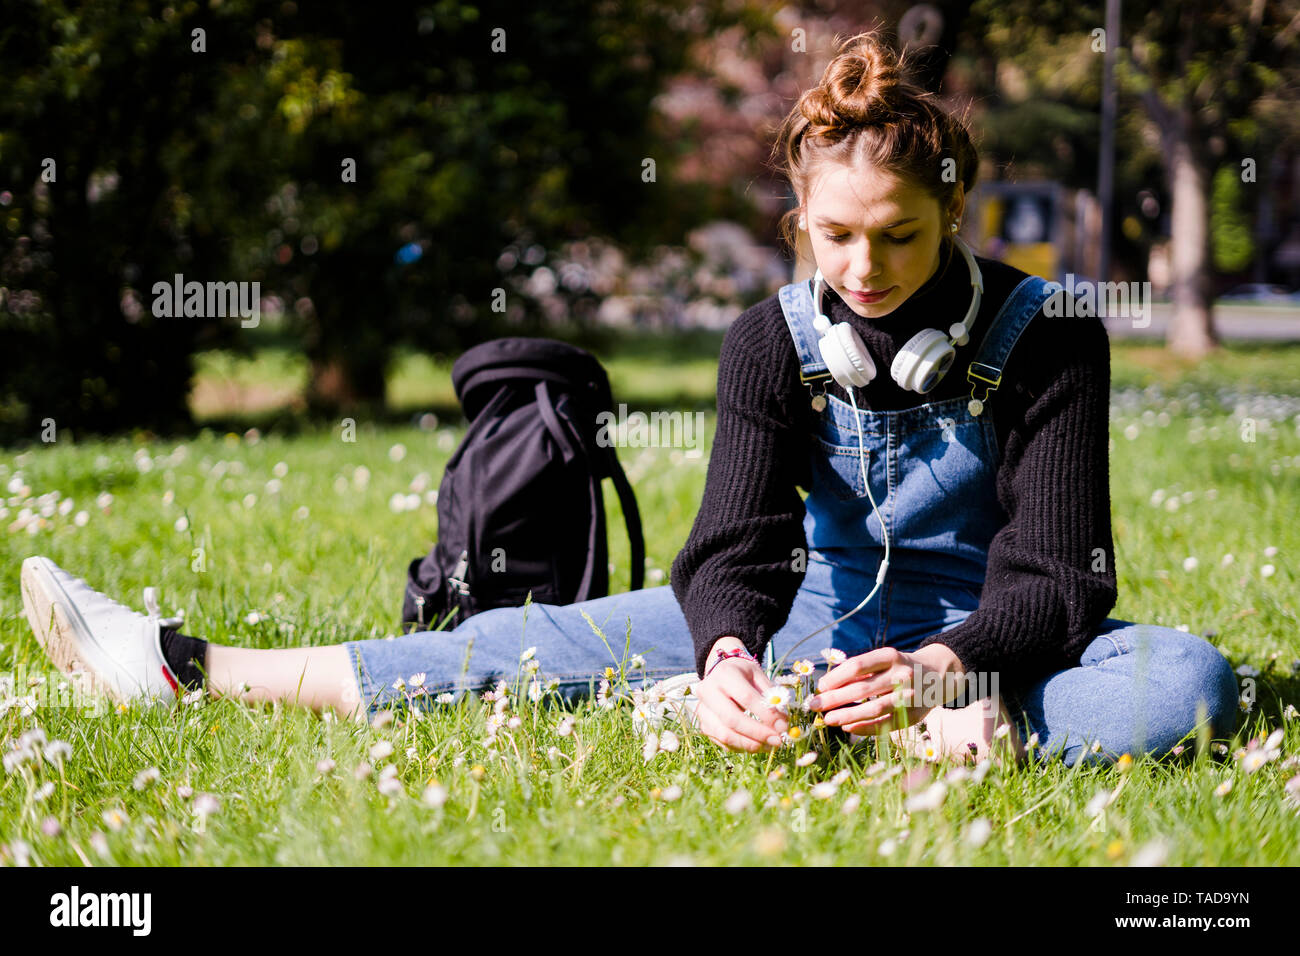 Young woman picking daisies in a park - Stock Image